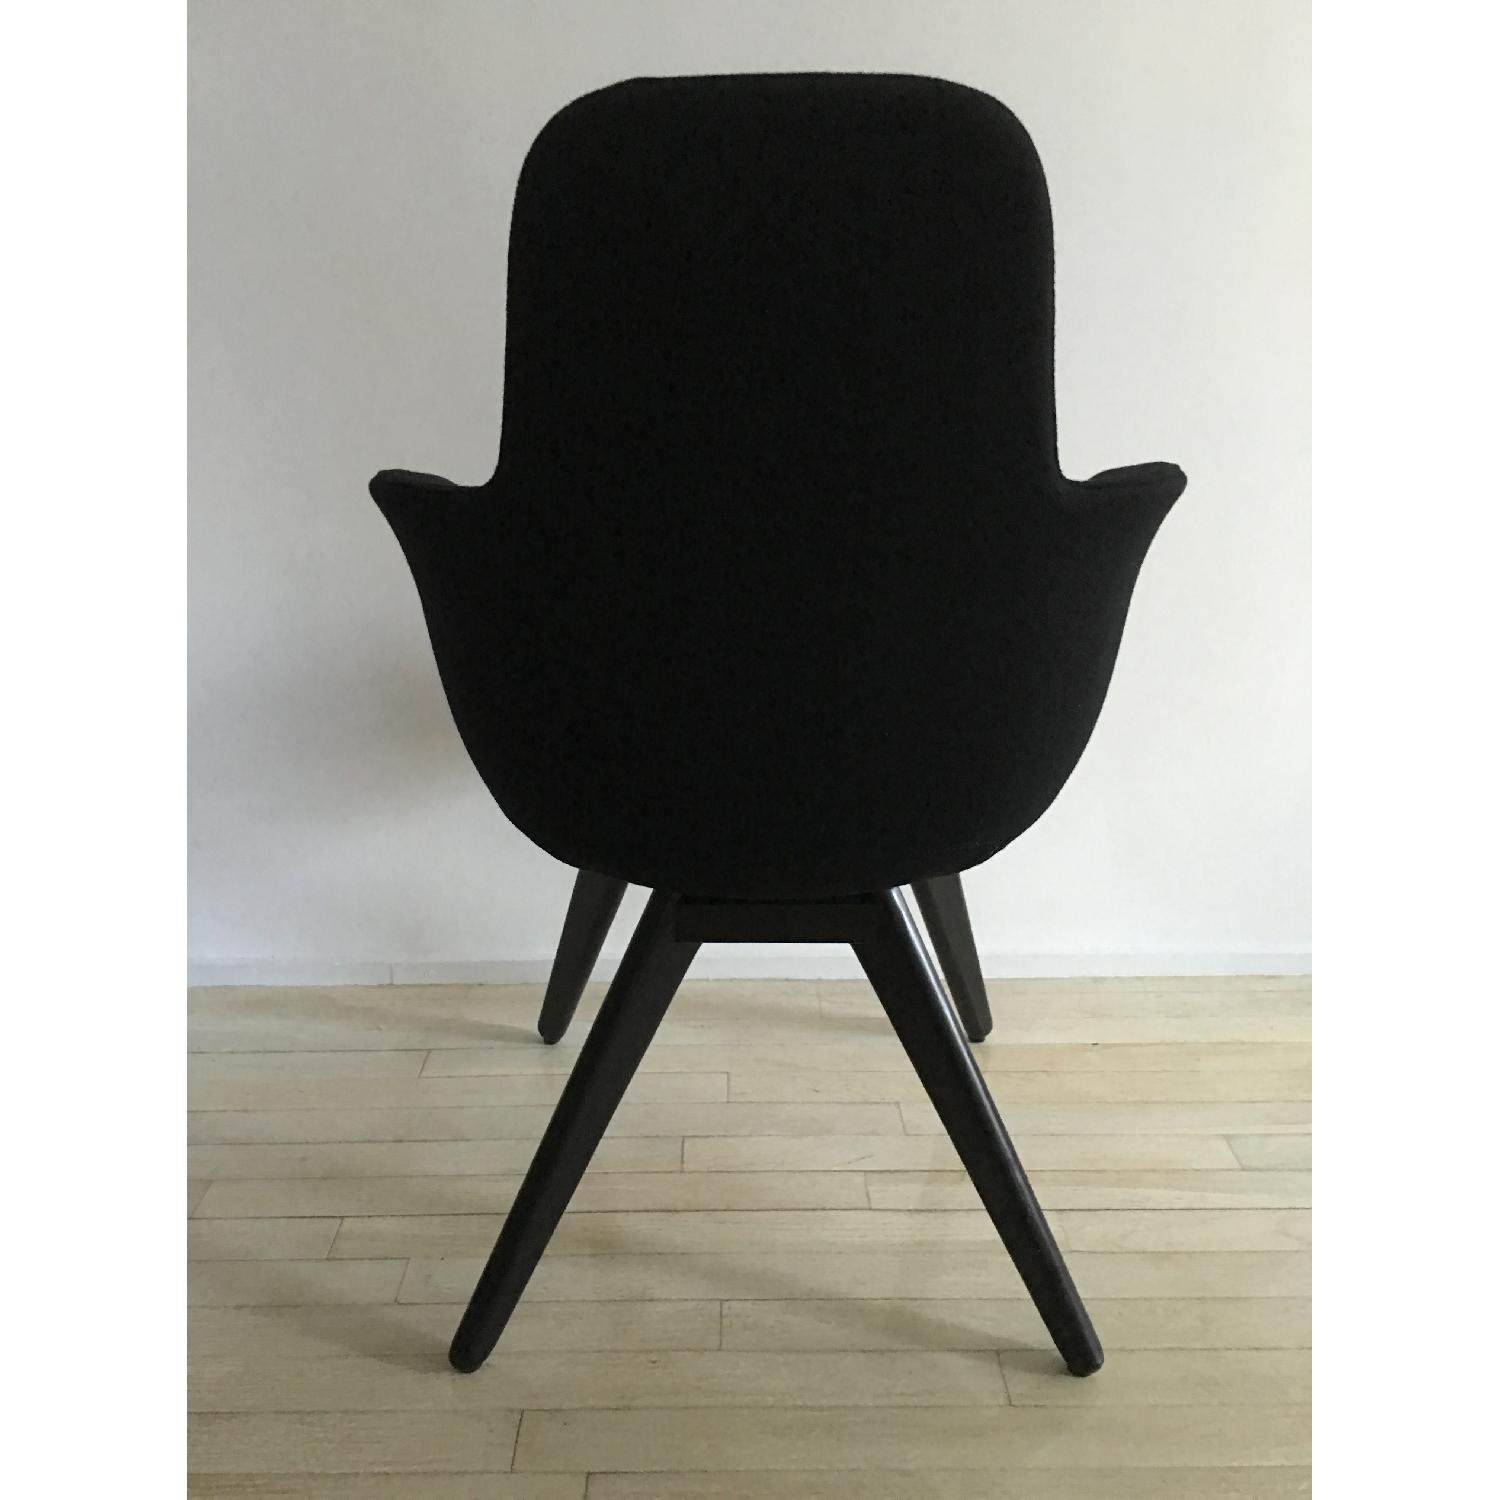 Tom Dixon High Back Scoop Chairs - 2 Available - image-5